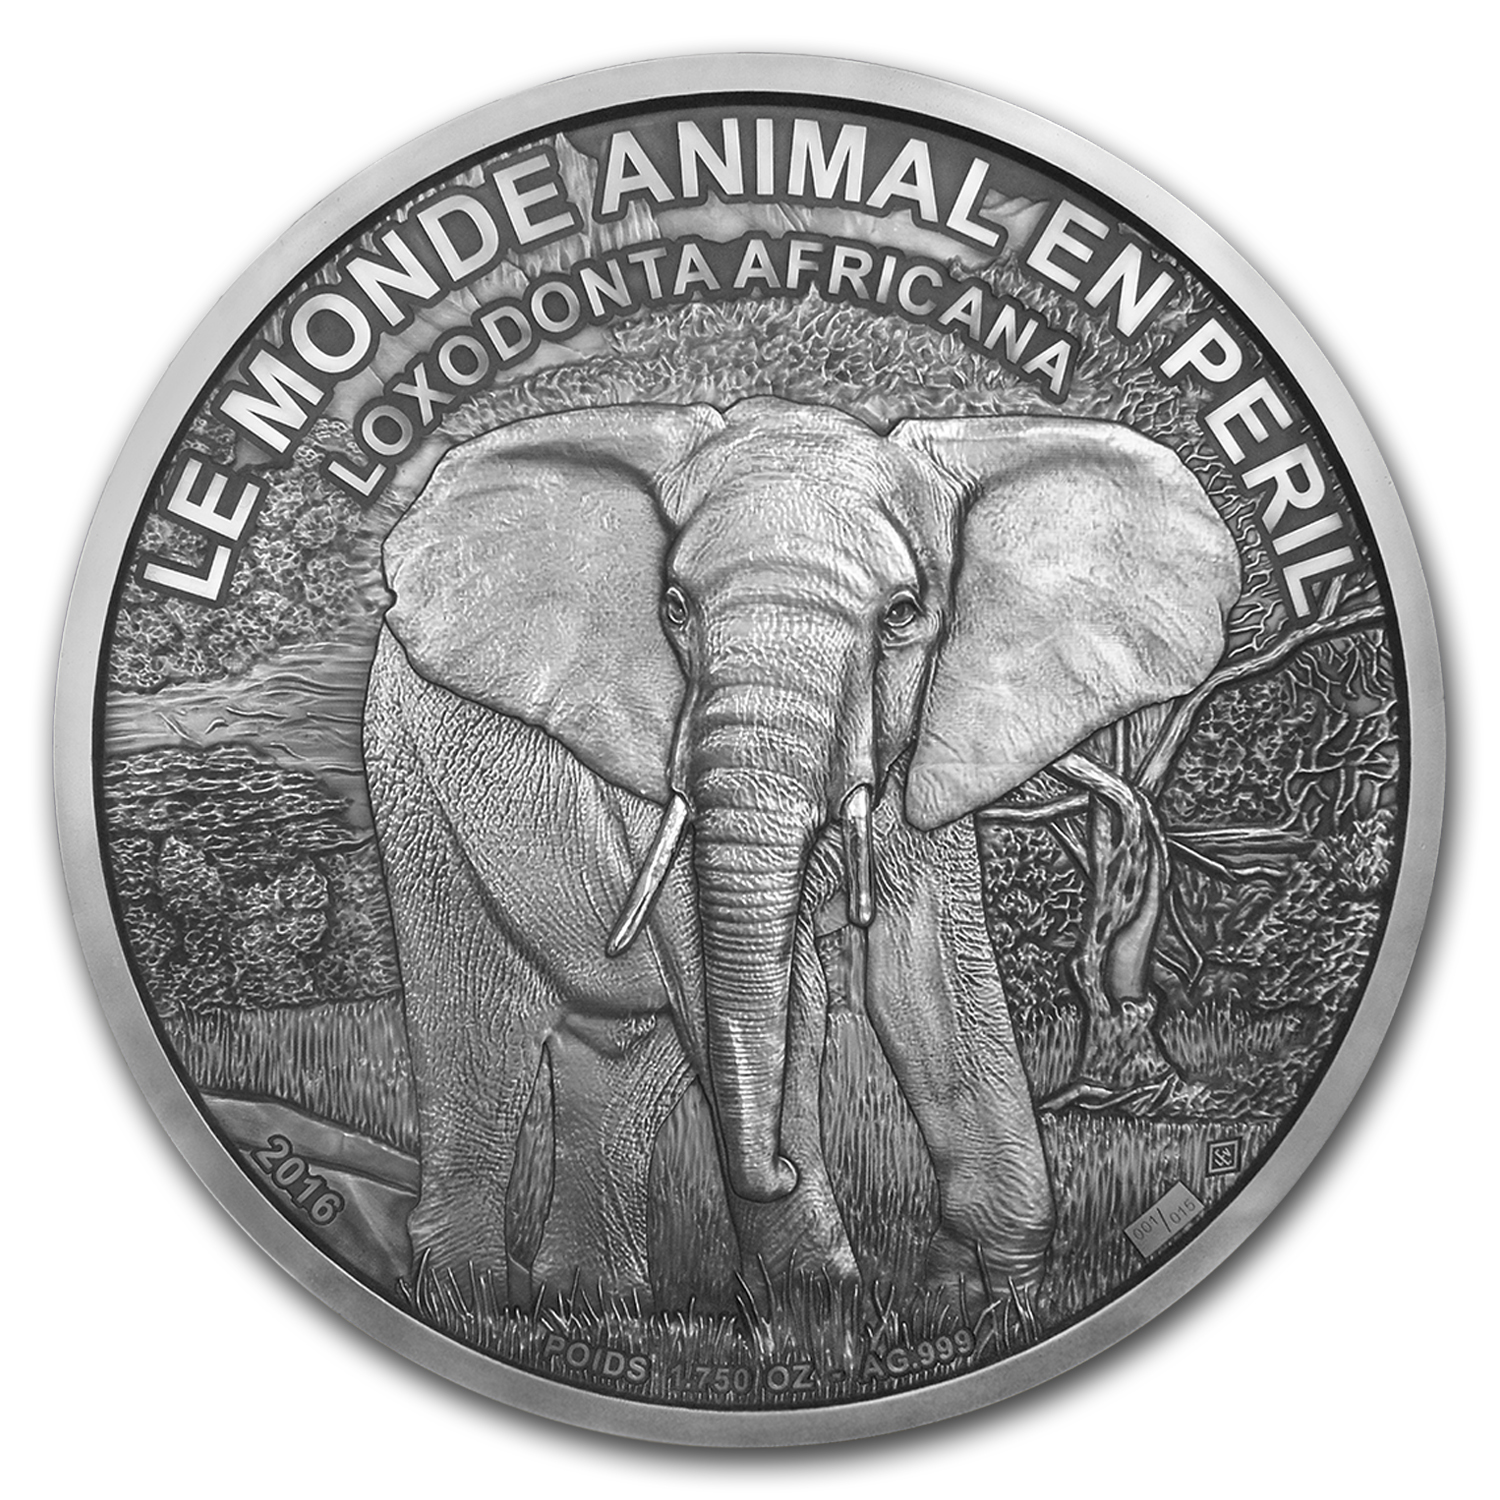 2016 Ivory Coast 1,750 oz Silver Elephant Coin